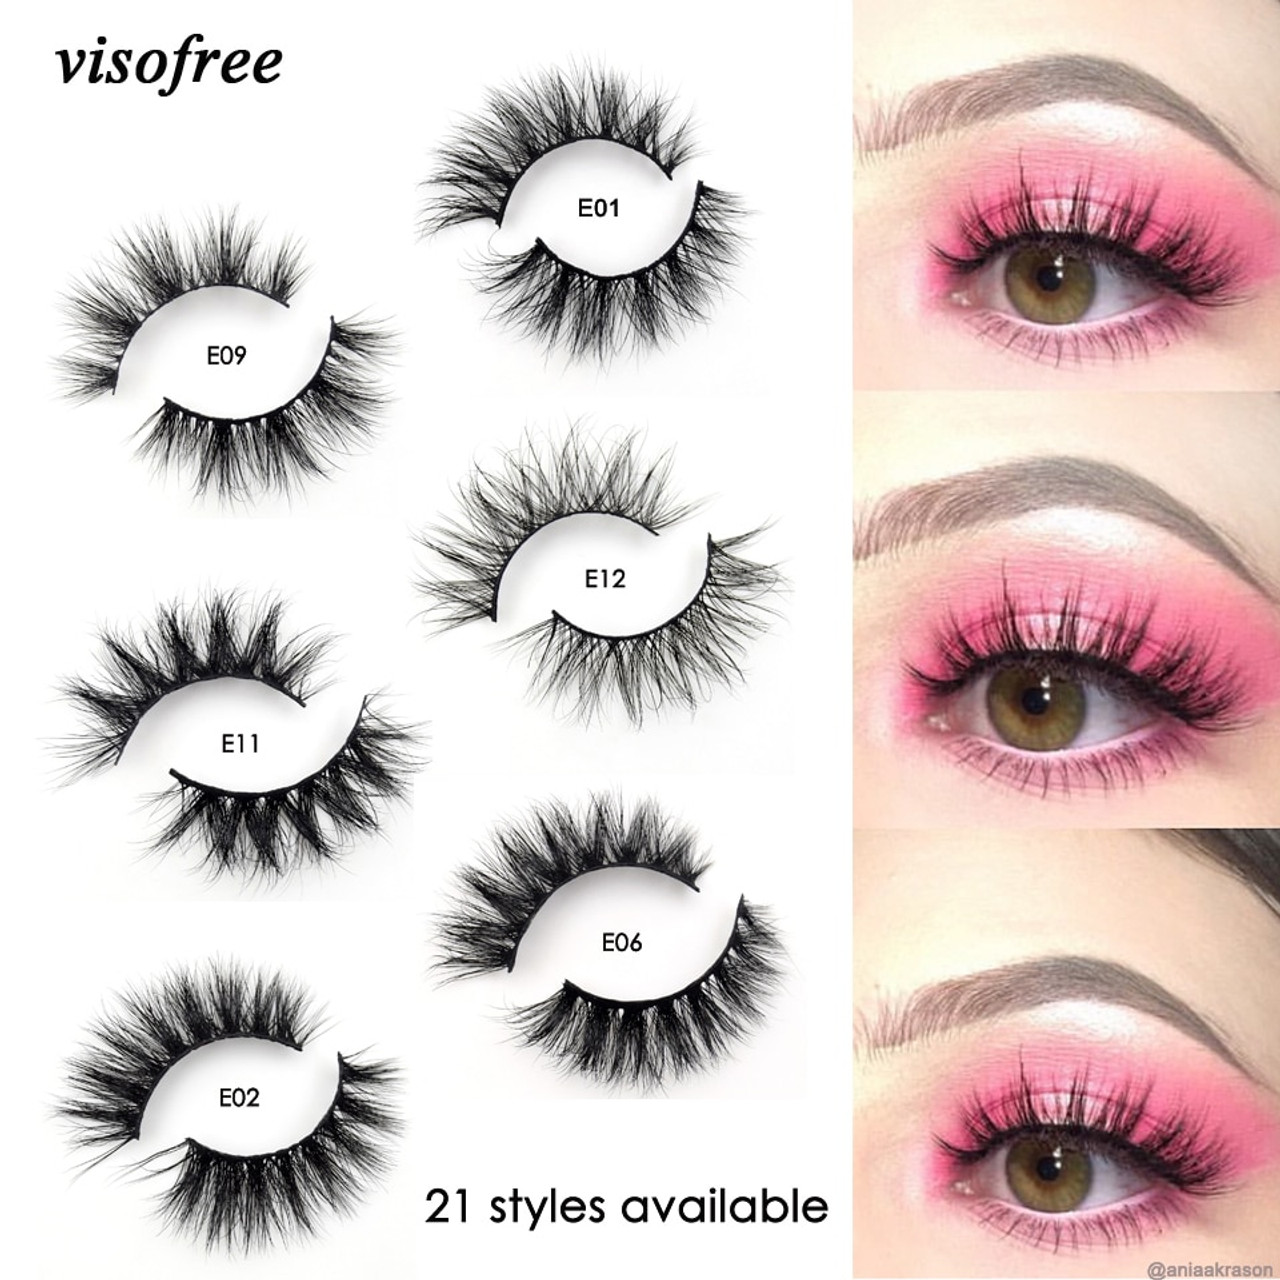 0093aa10383 Visofree Mink Lashes 3D Mink Eyelashes 100% Cruelty free Lashes Handmade  Reusable Natural Eyelashes Popular ... LEHUAMAO Mink Lashes 3D Mink False  ...